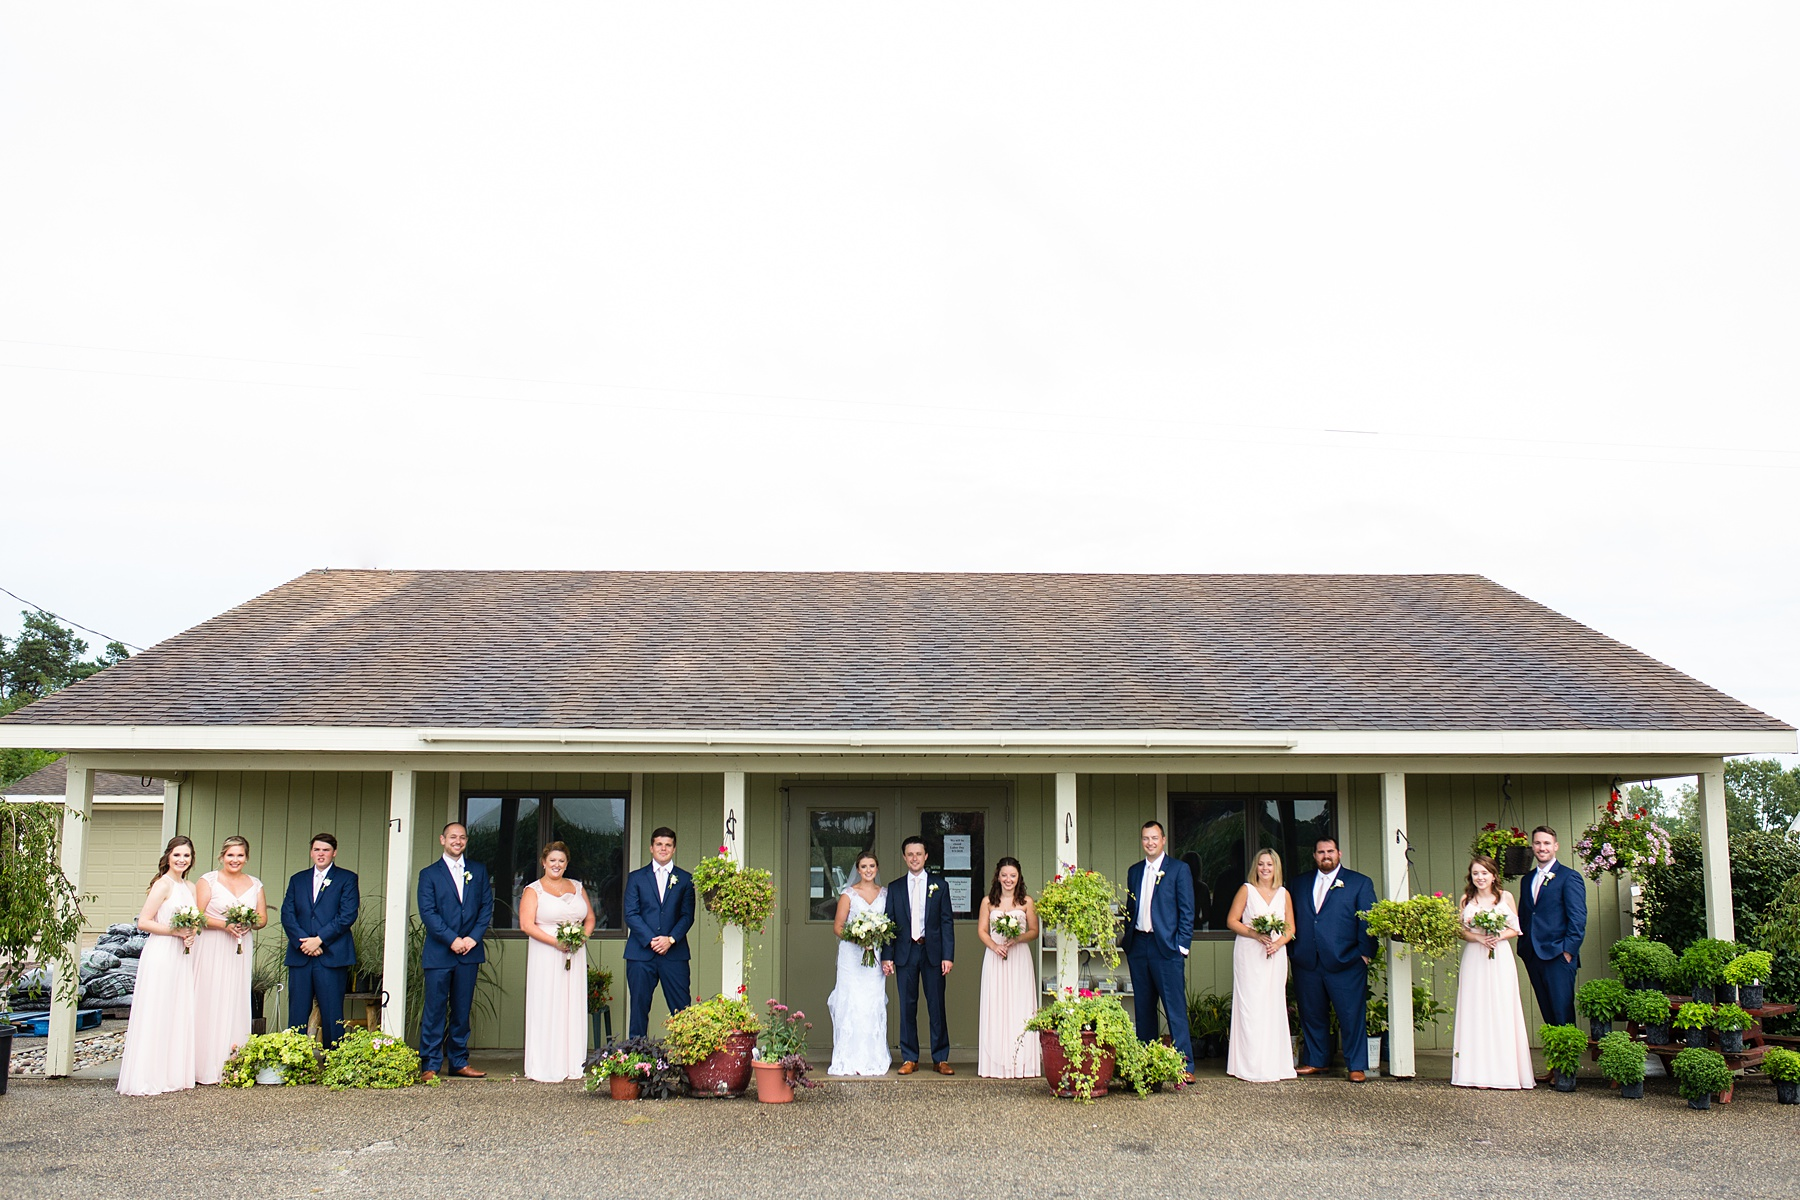 Brandon_Shafer_Photography_Emily_Steve_Bay_Pointe_GunLake_Wedding_0032.jpg